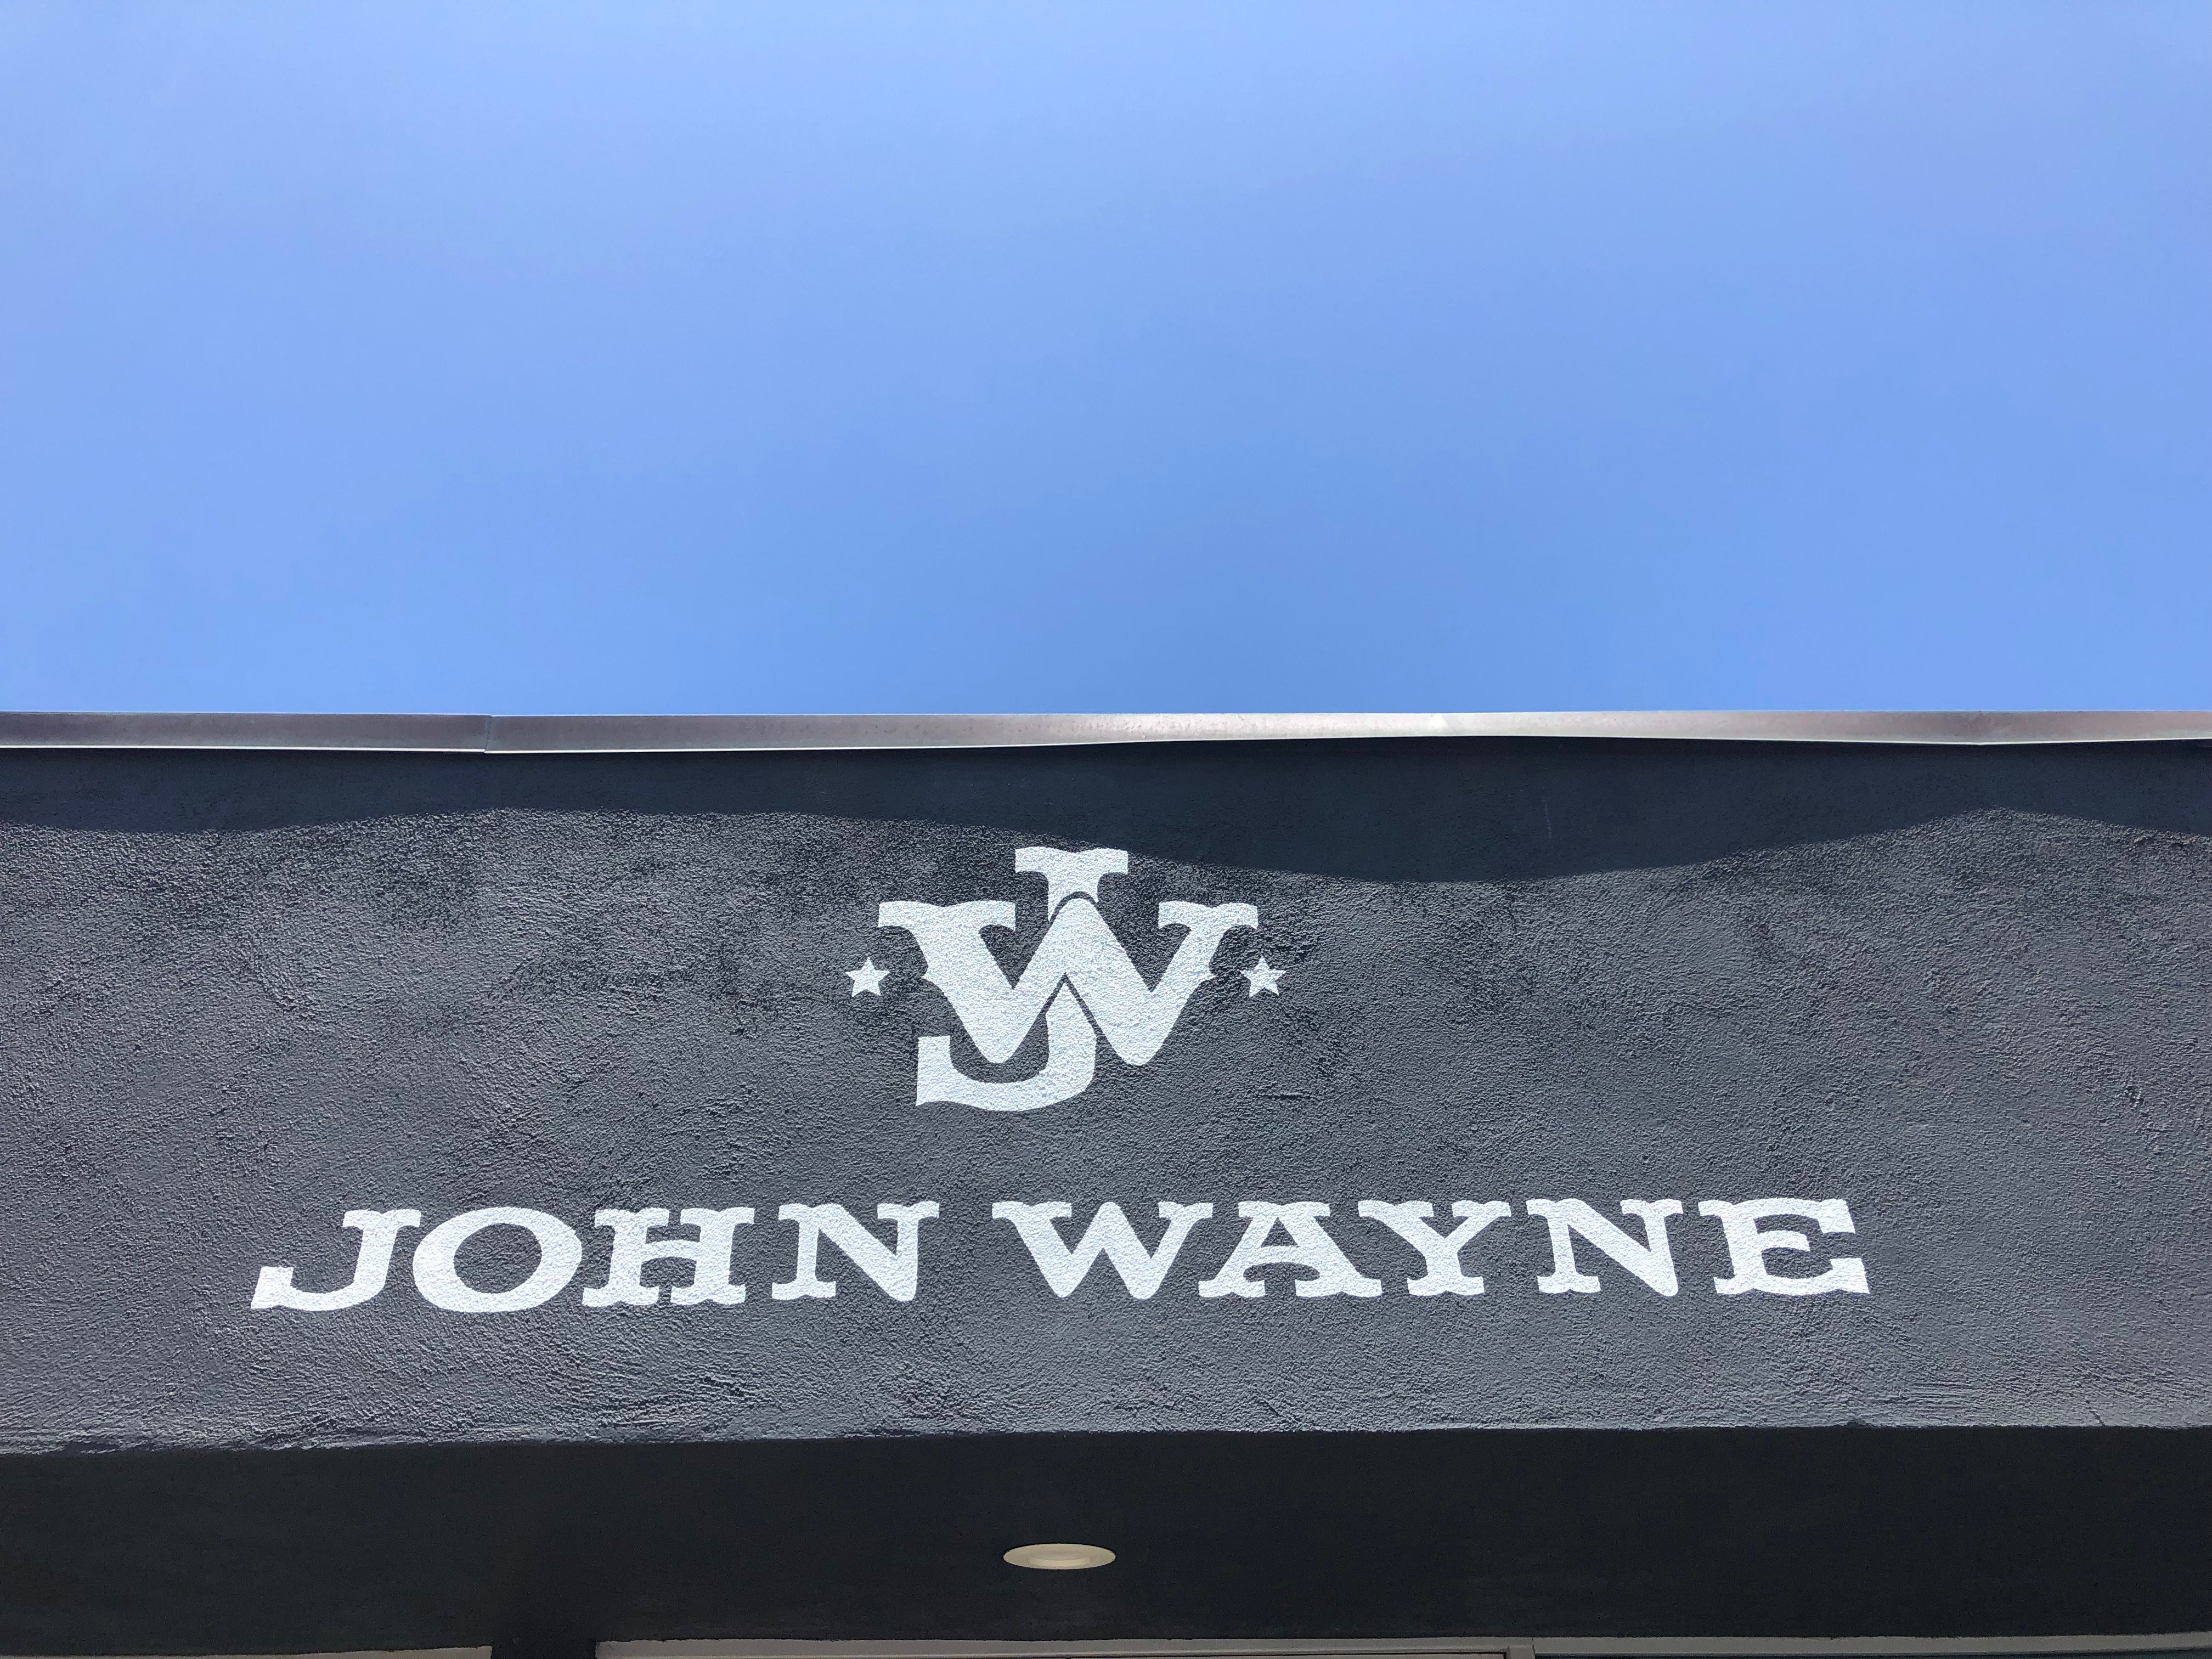 JOHN WAYNE ENTERPRISE